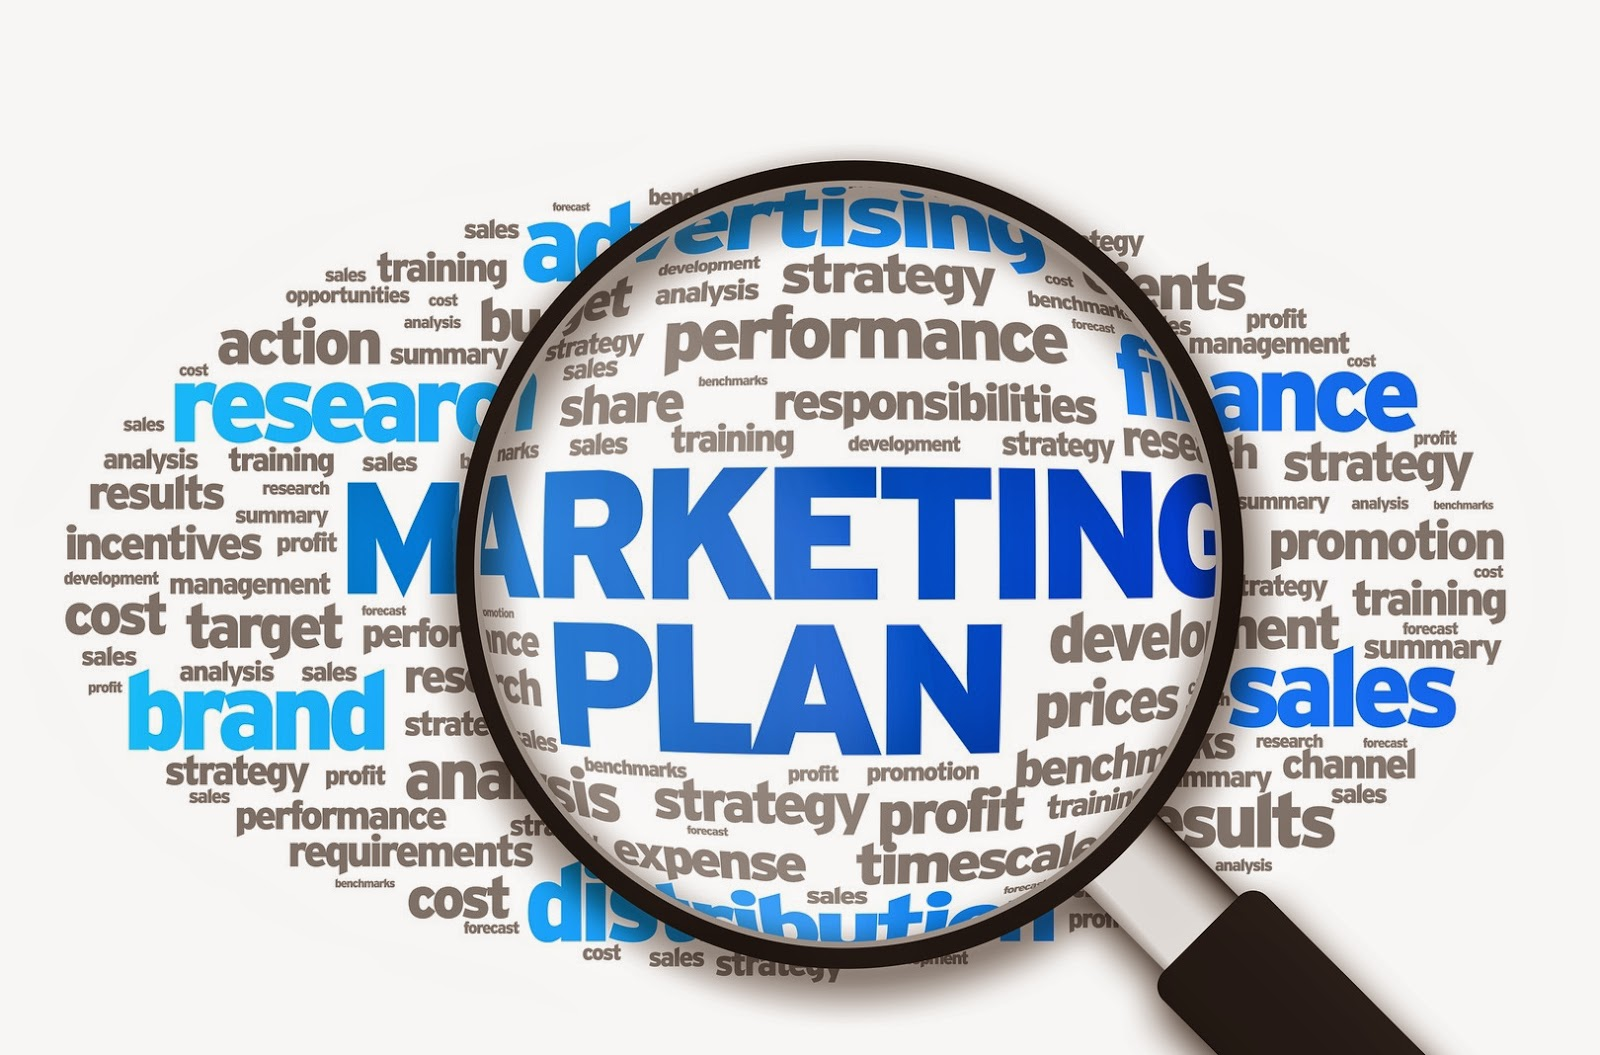 marketing solutions gate: do you know what is the marketing plan